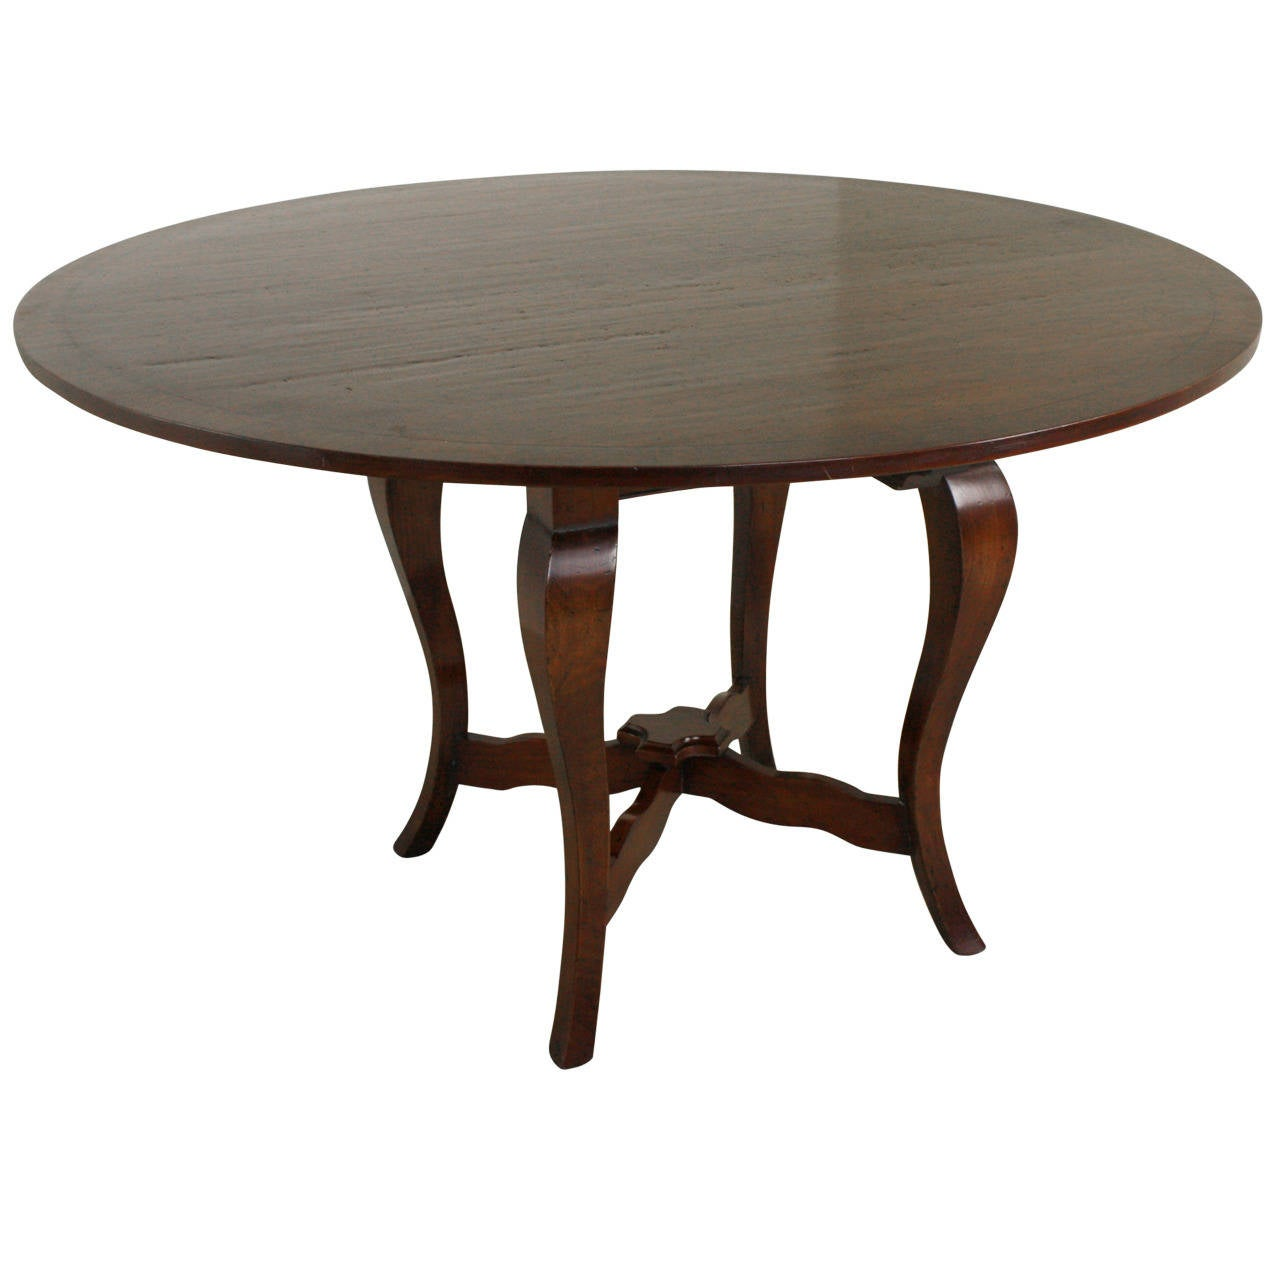 Round cherry ebony banded dining table at 1stdibs for Cherry dining table